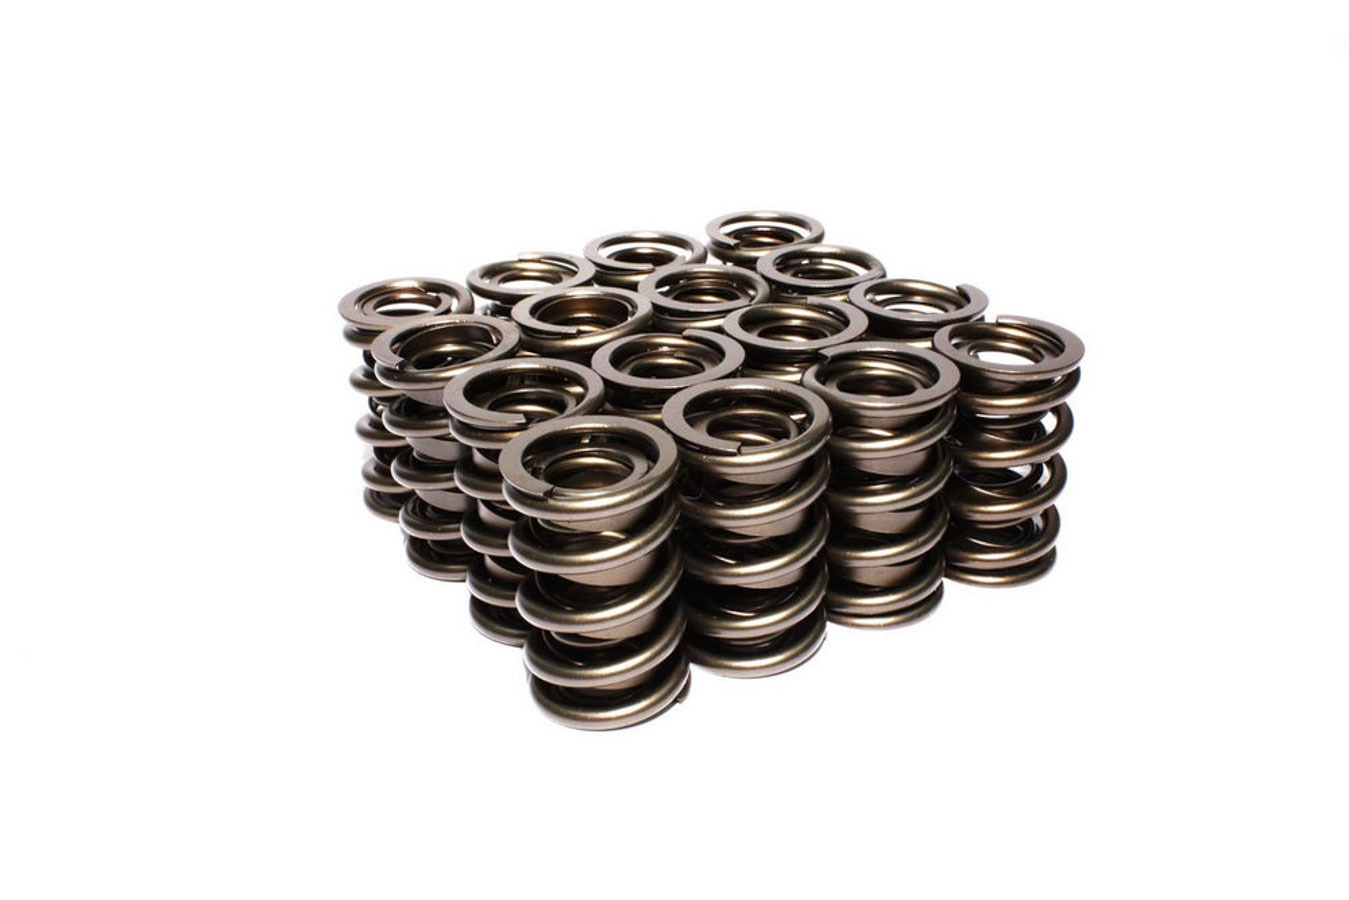 Comp Cams 26094-16 Valve Spring, Race Endurance, Dual Spring / Damper, 449 lb/in Spring Rate, 1.200 in Coil Bind, 1.550 in OD, Set of 16